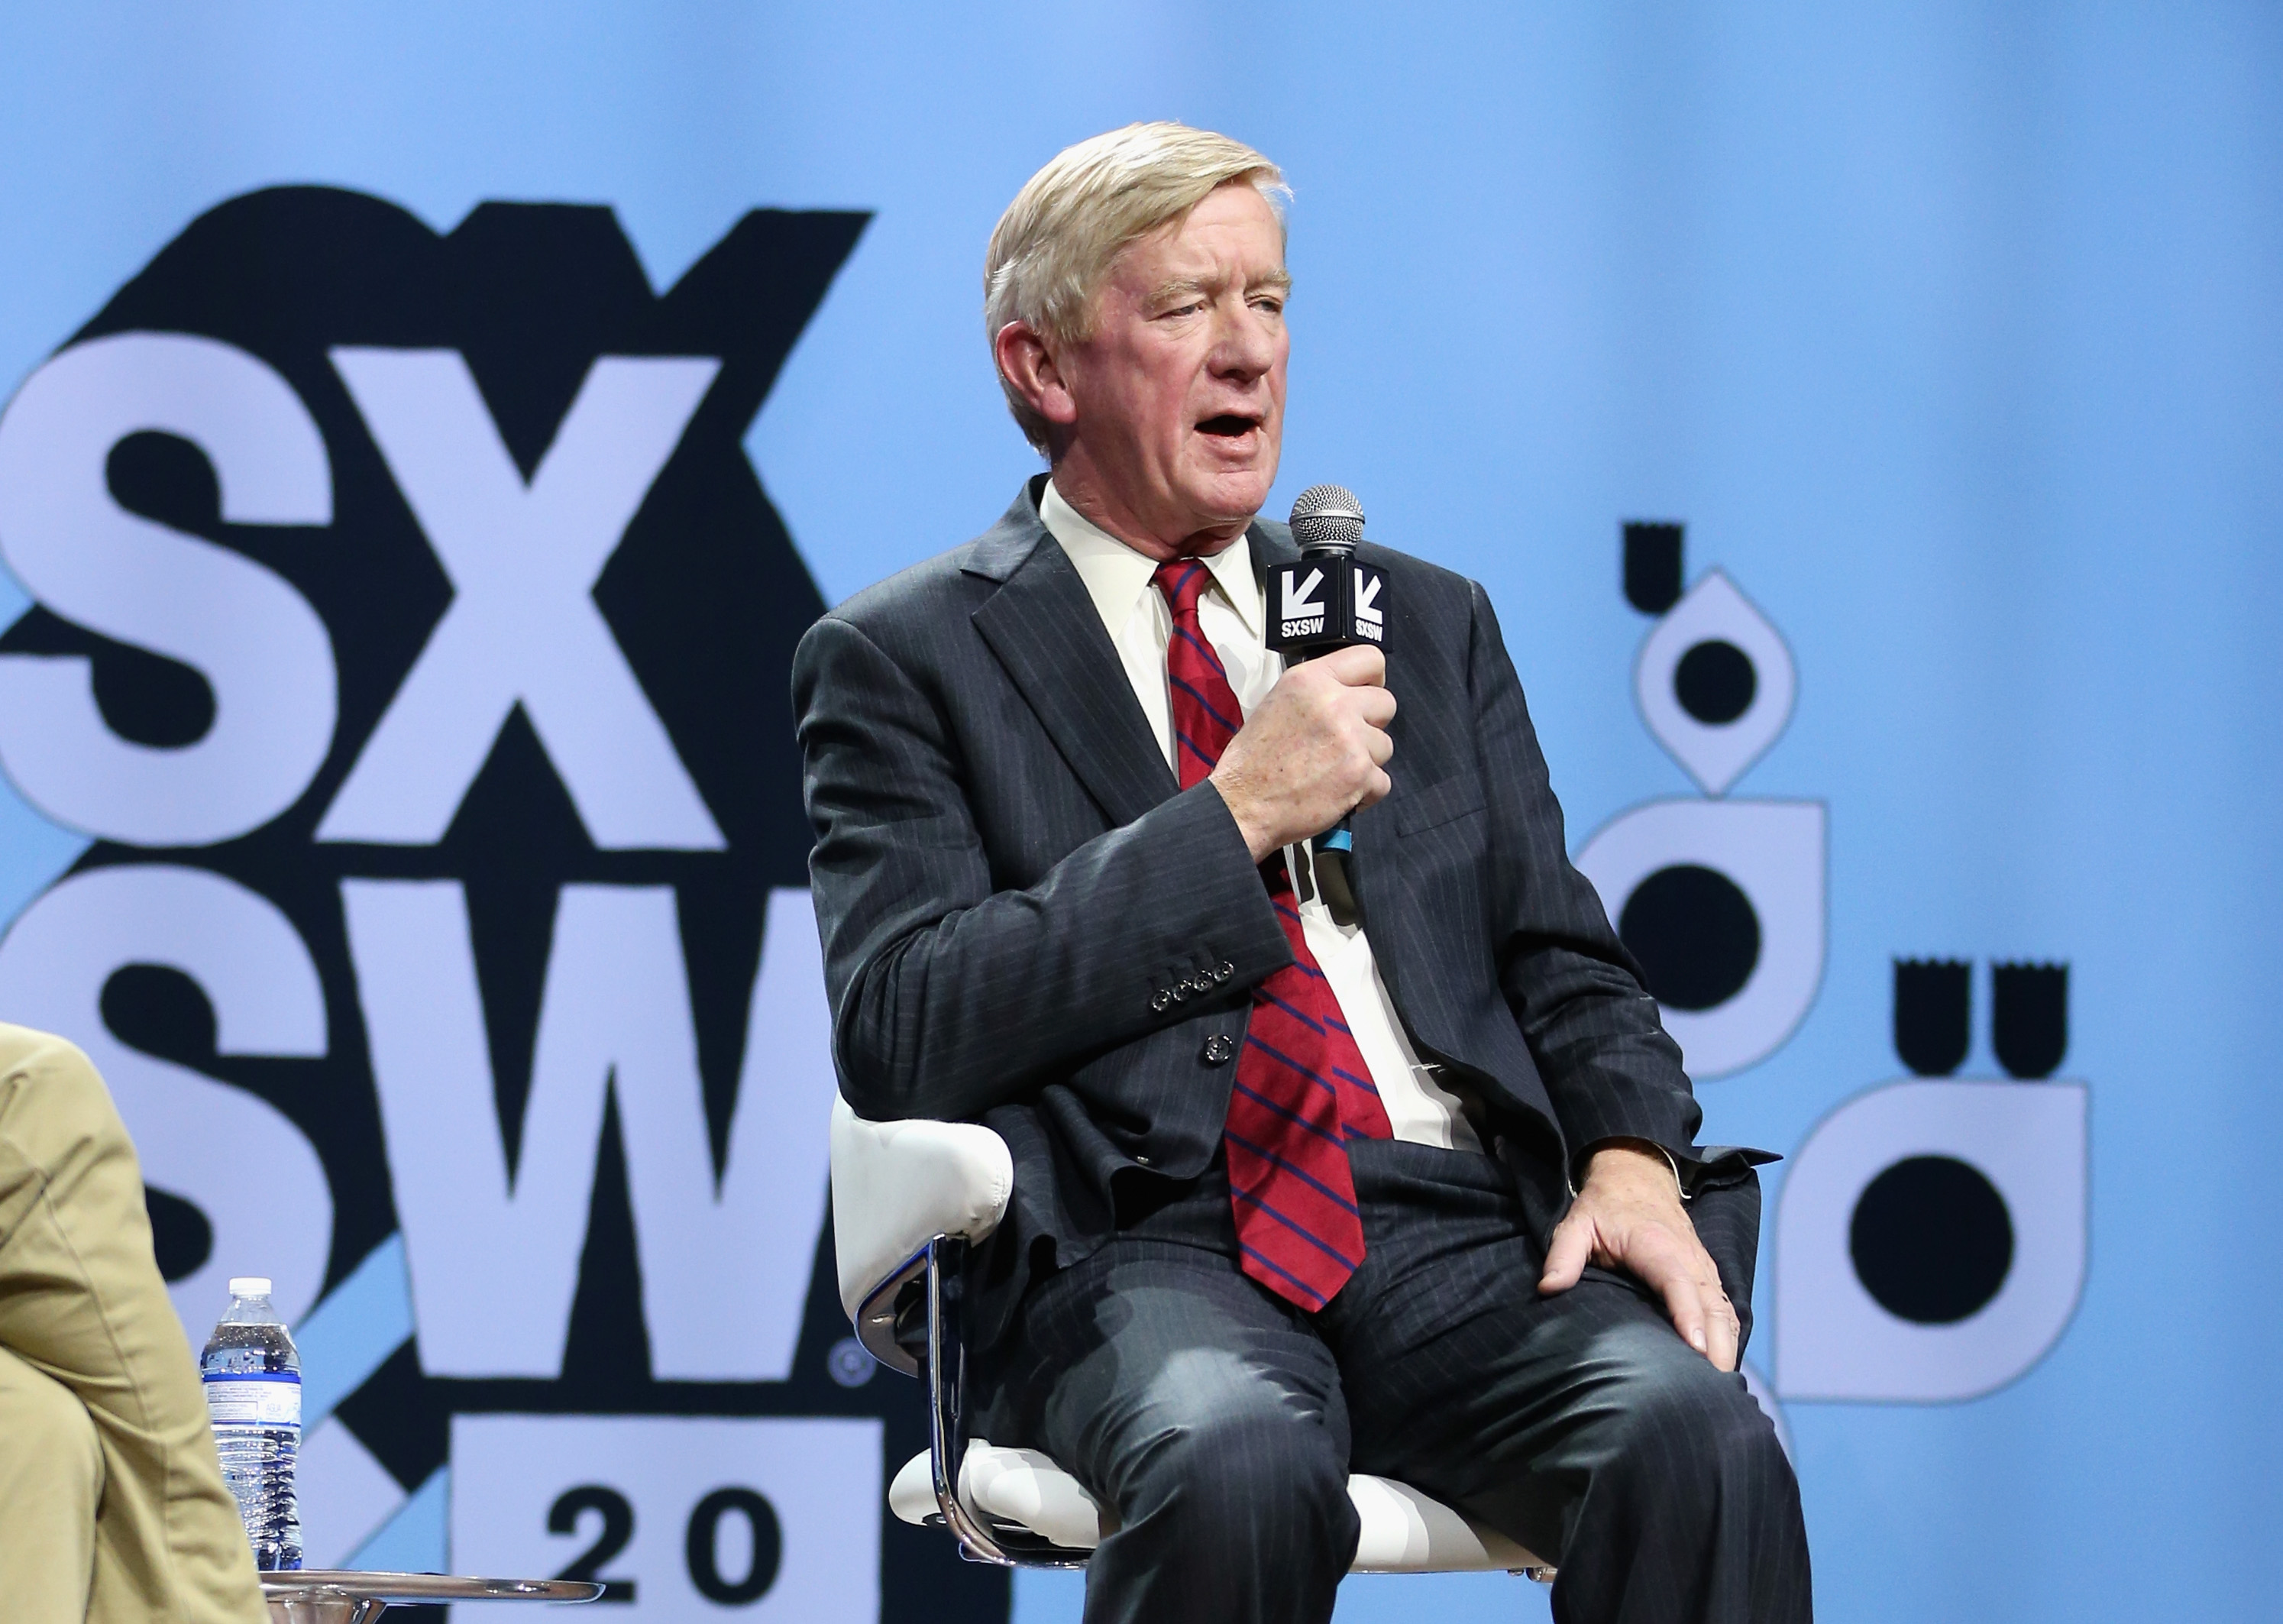 Bill Weld speaks onstage at Conversations About America's Future: Former Governor Bill Weld during the 2019 SXSW Conference and Festivals at Austin City Limits Live at the Moody Theater on March 8, 2019 in Austin, Texas.